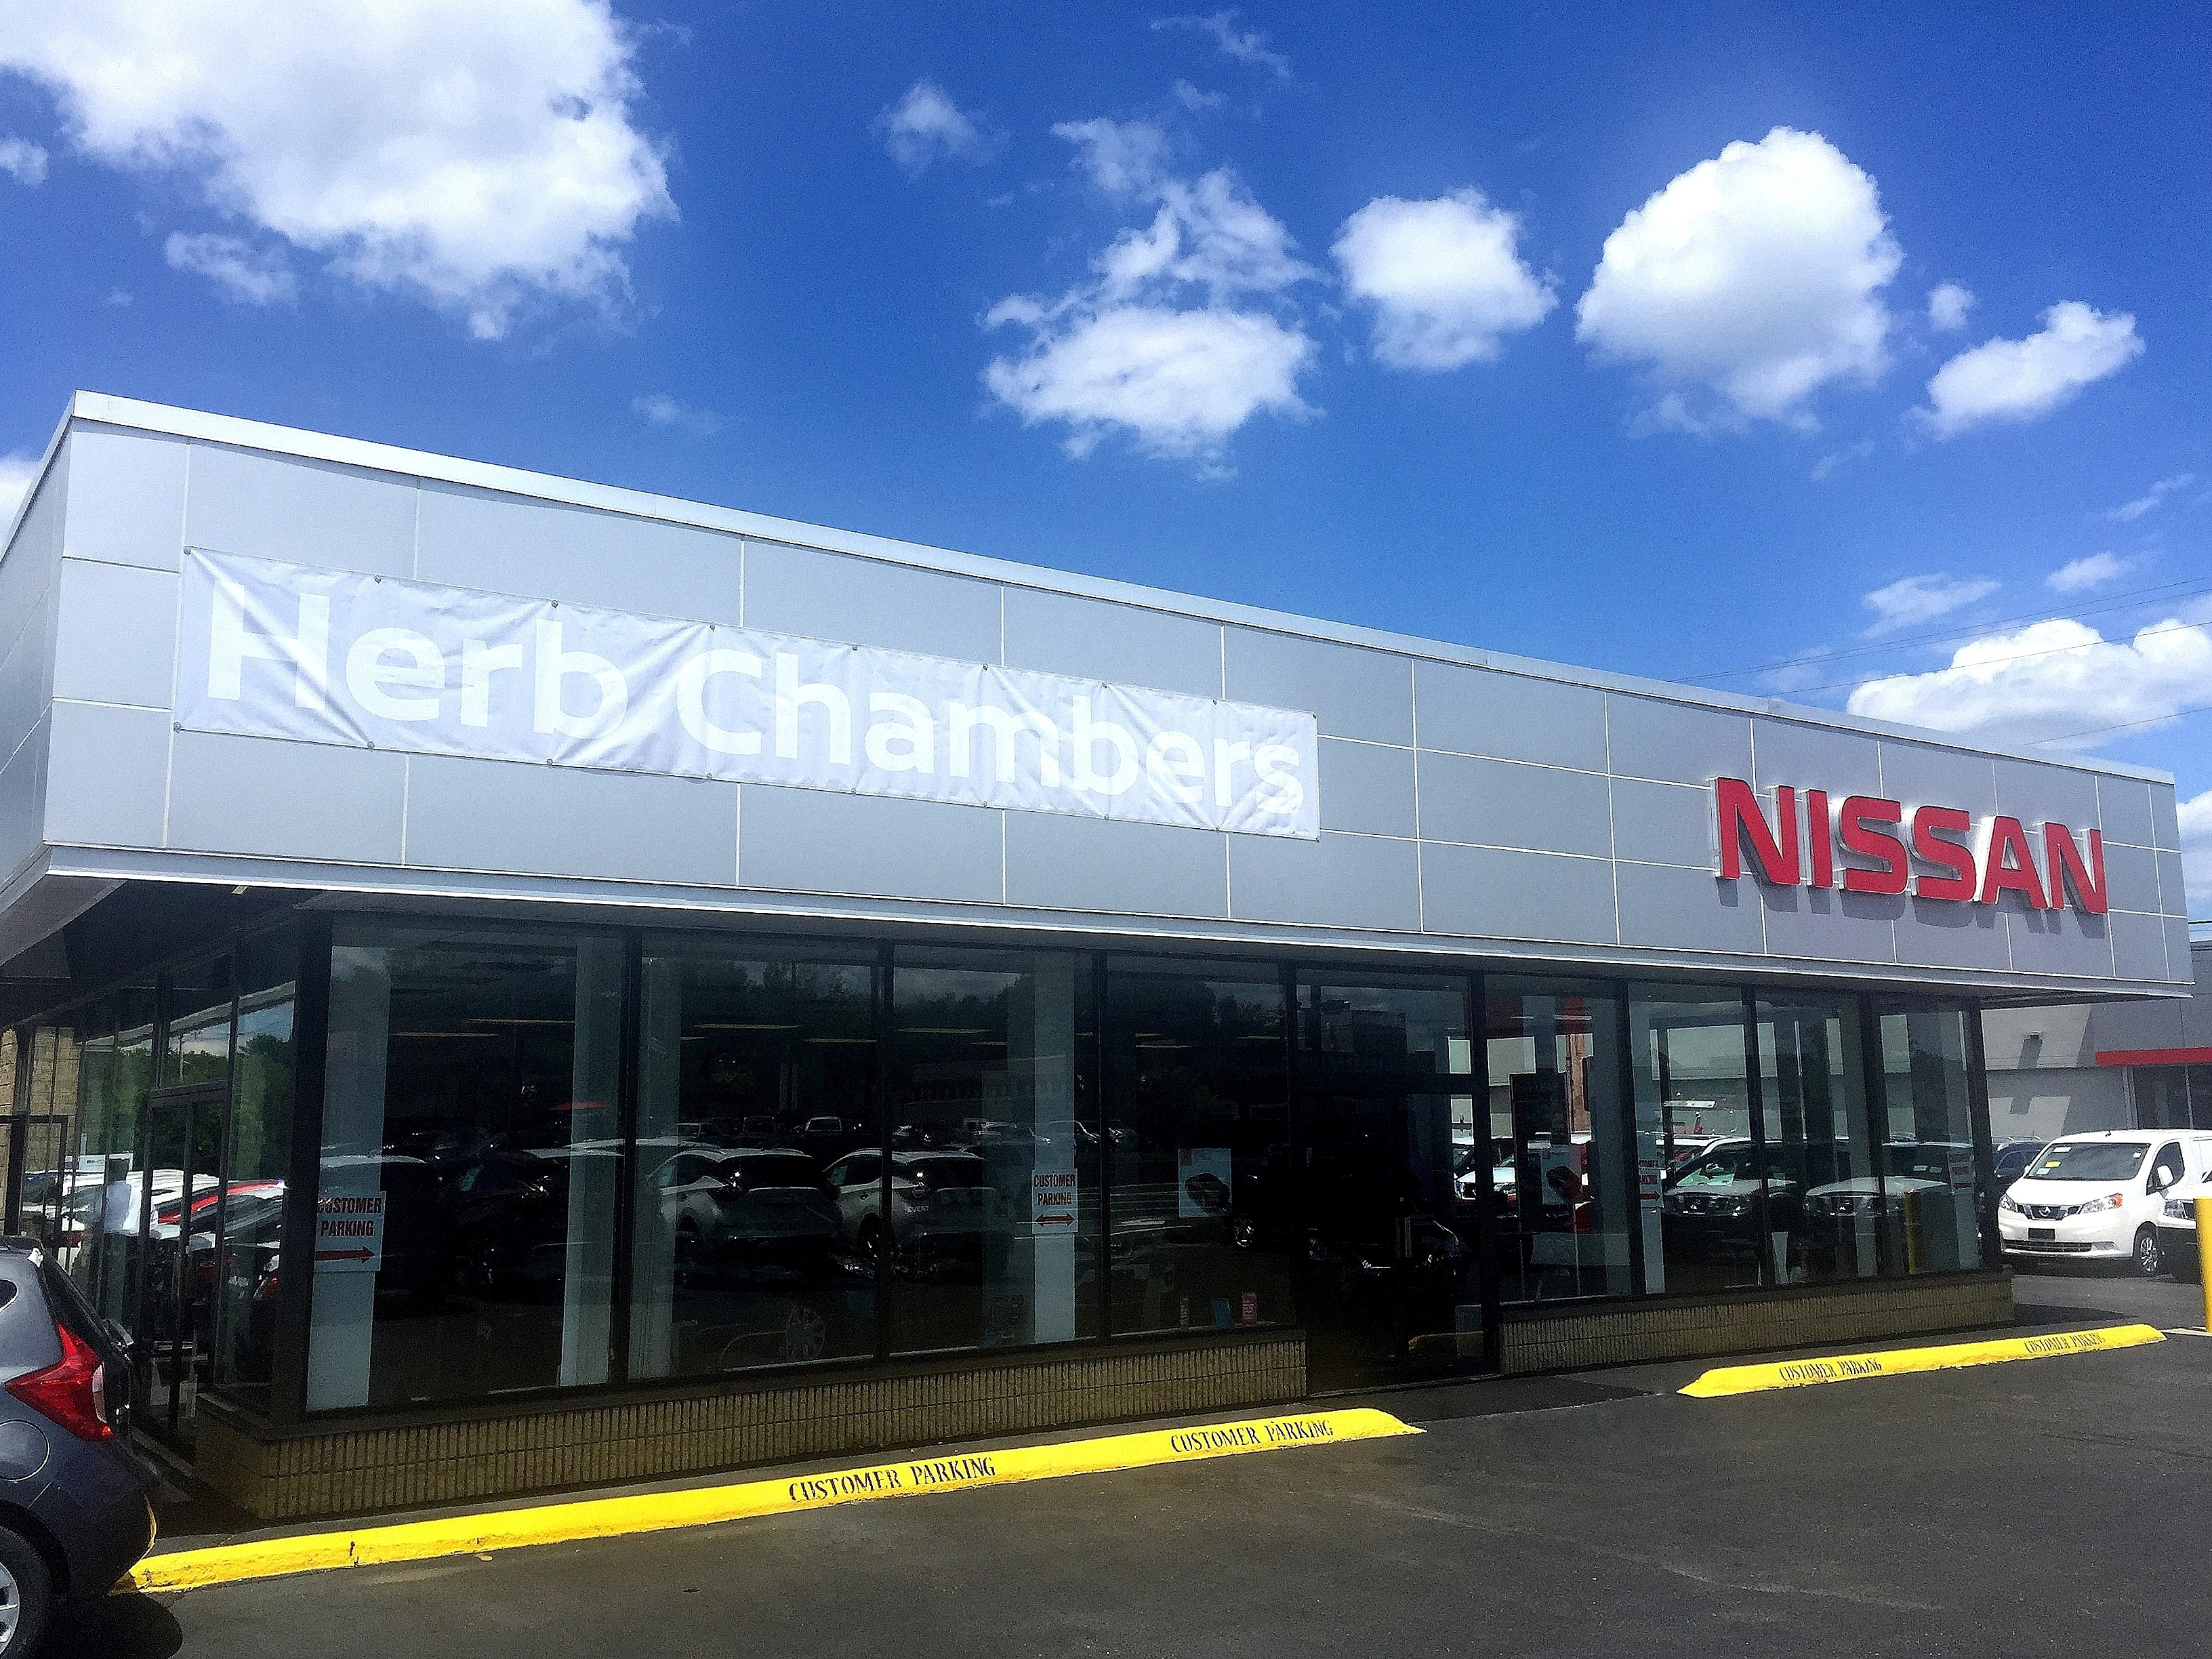 Herb Chambers Nissan of Westborough - Westborough, MA